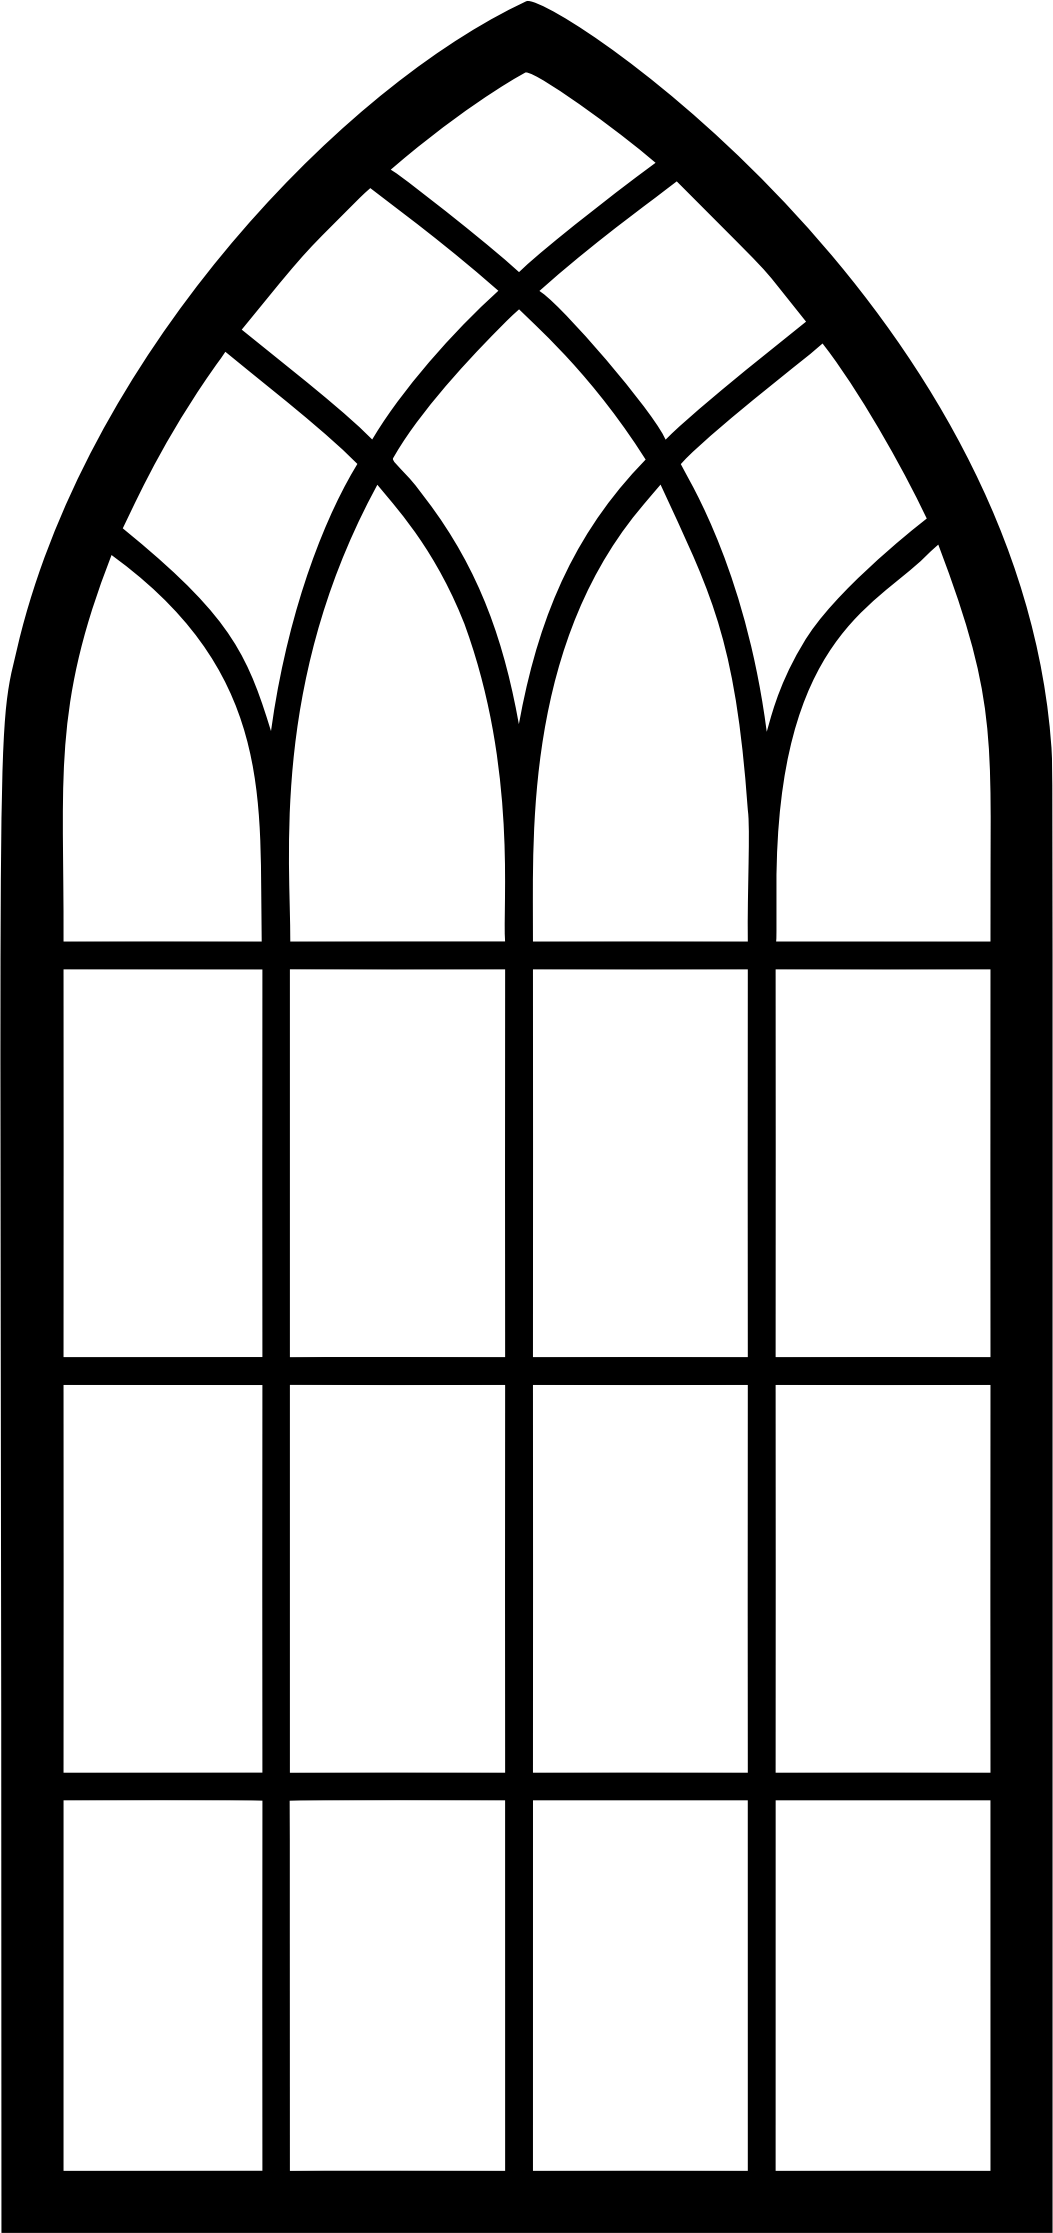 Cathedral Window Png - Arch Church Window Clipart